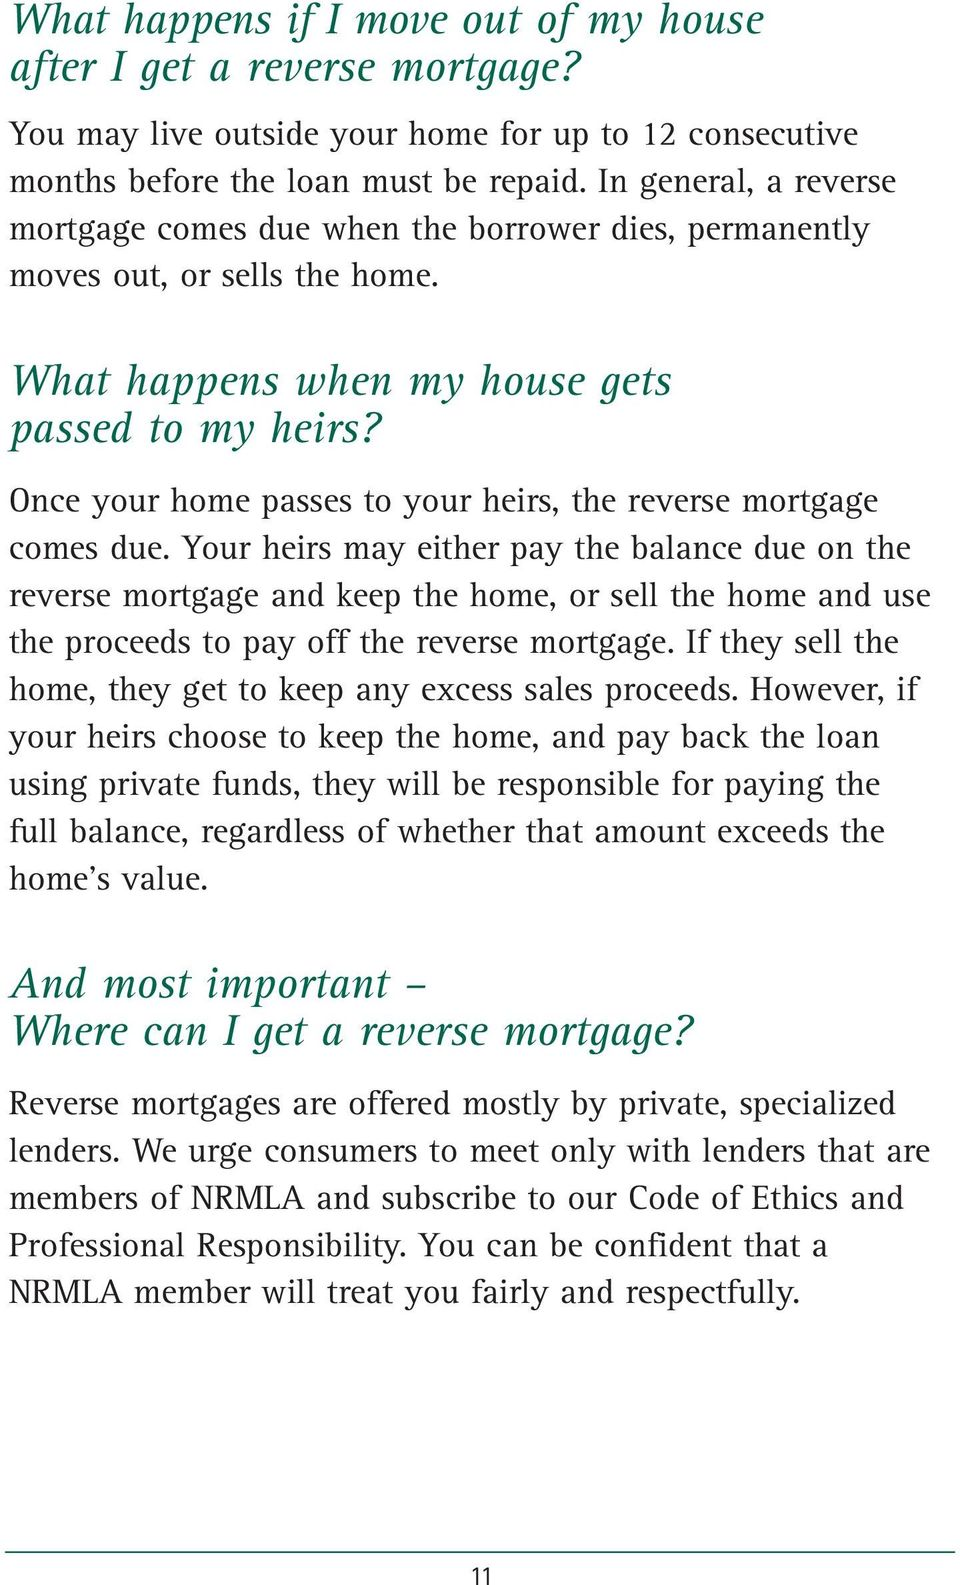 Once your home passes to your heirs, the reverse mortgage comes due.